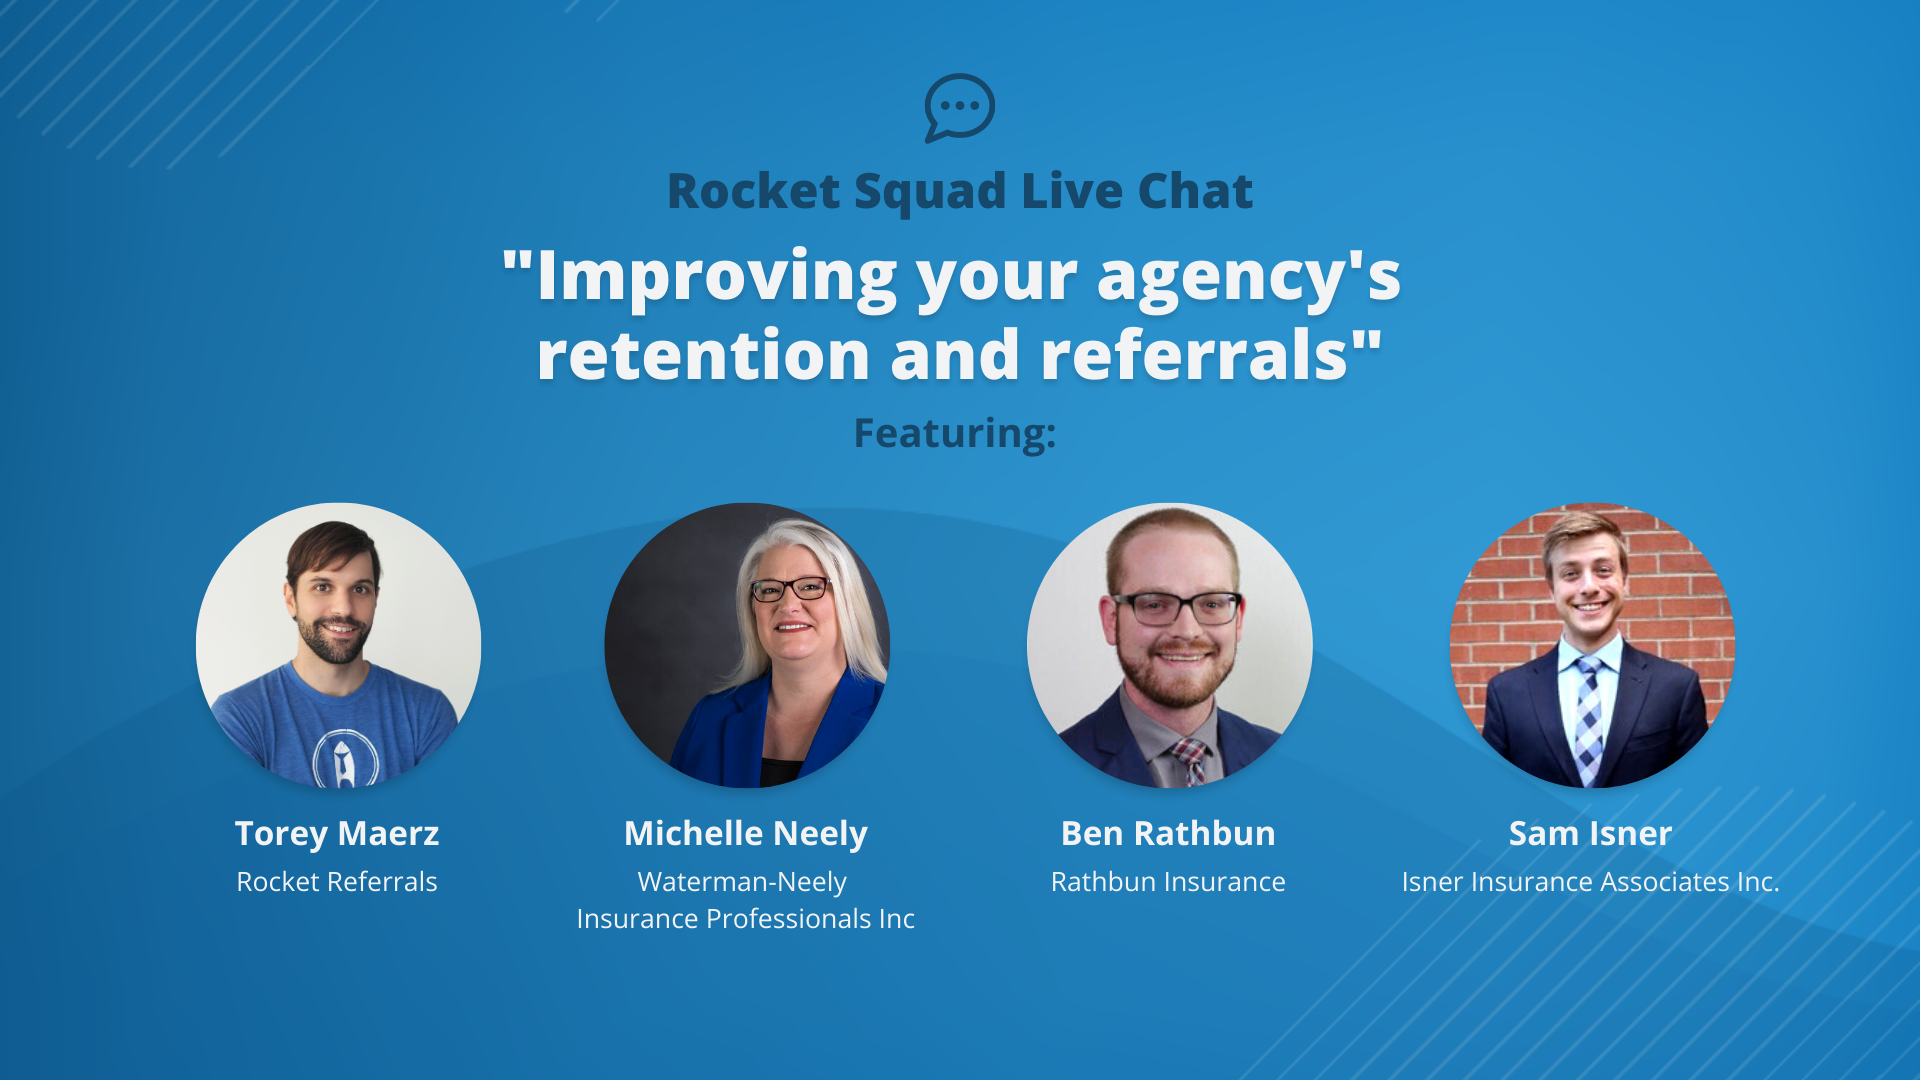 Improving your agency's retention and referrals